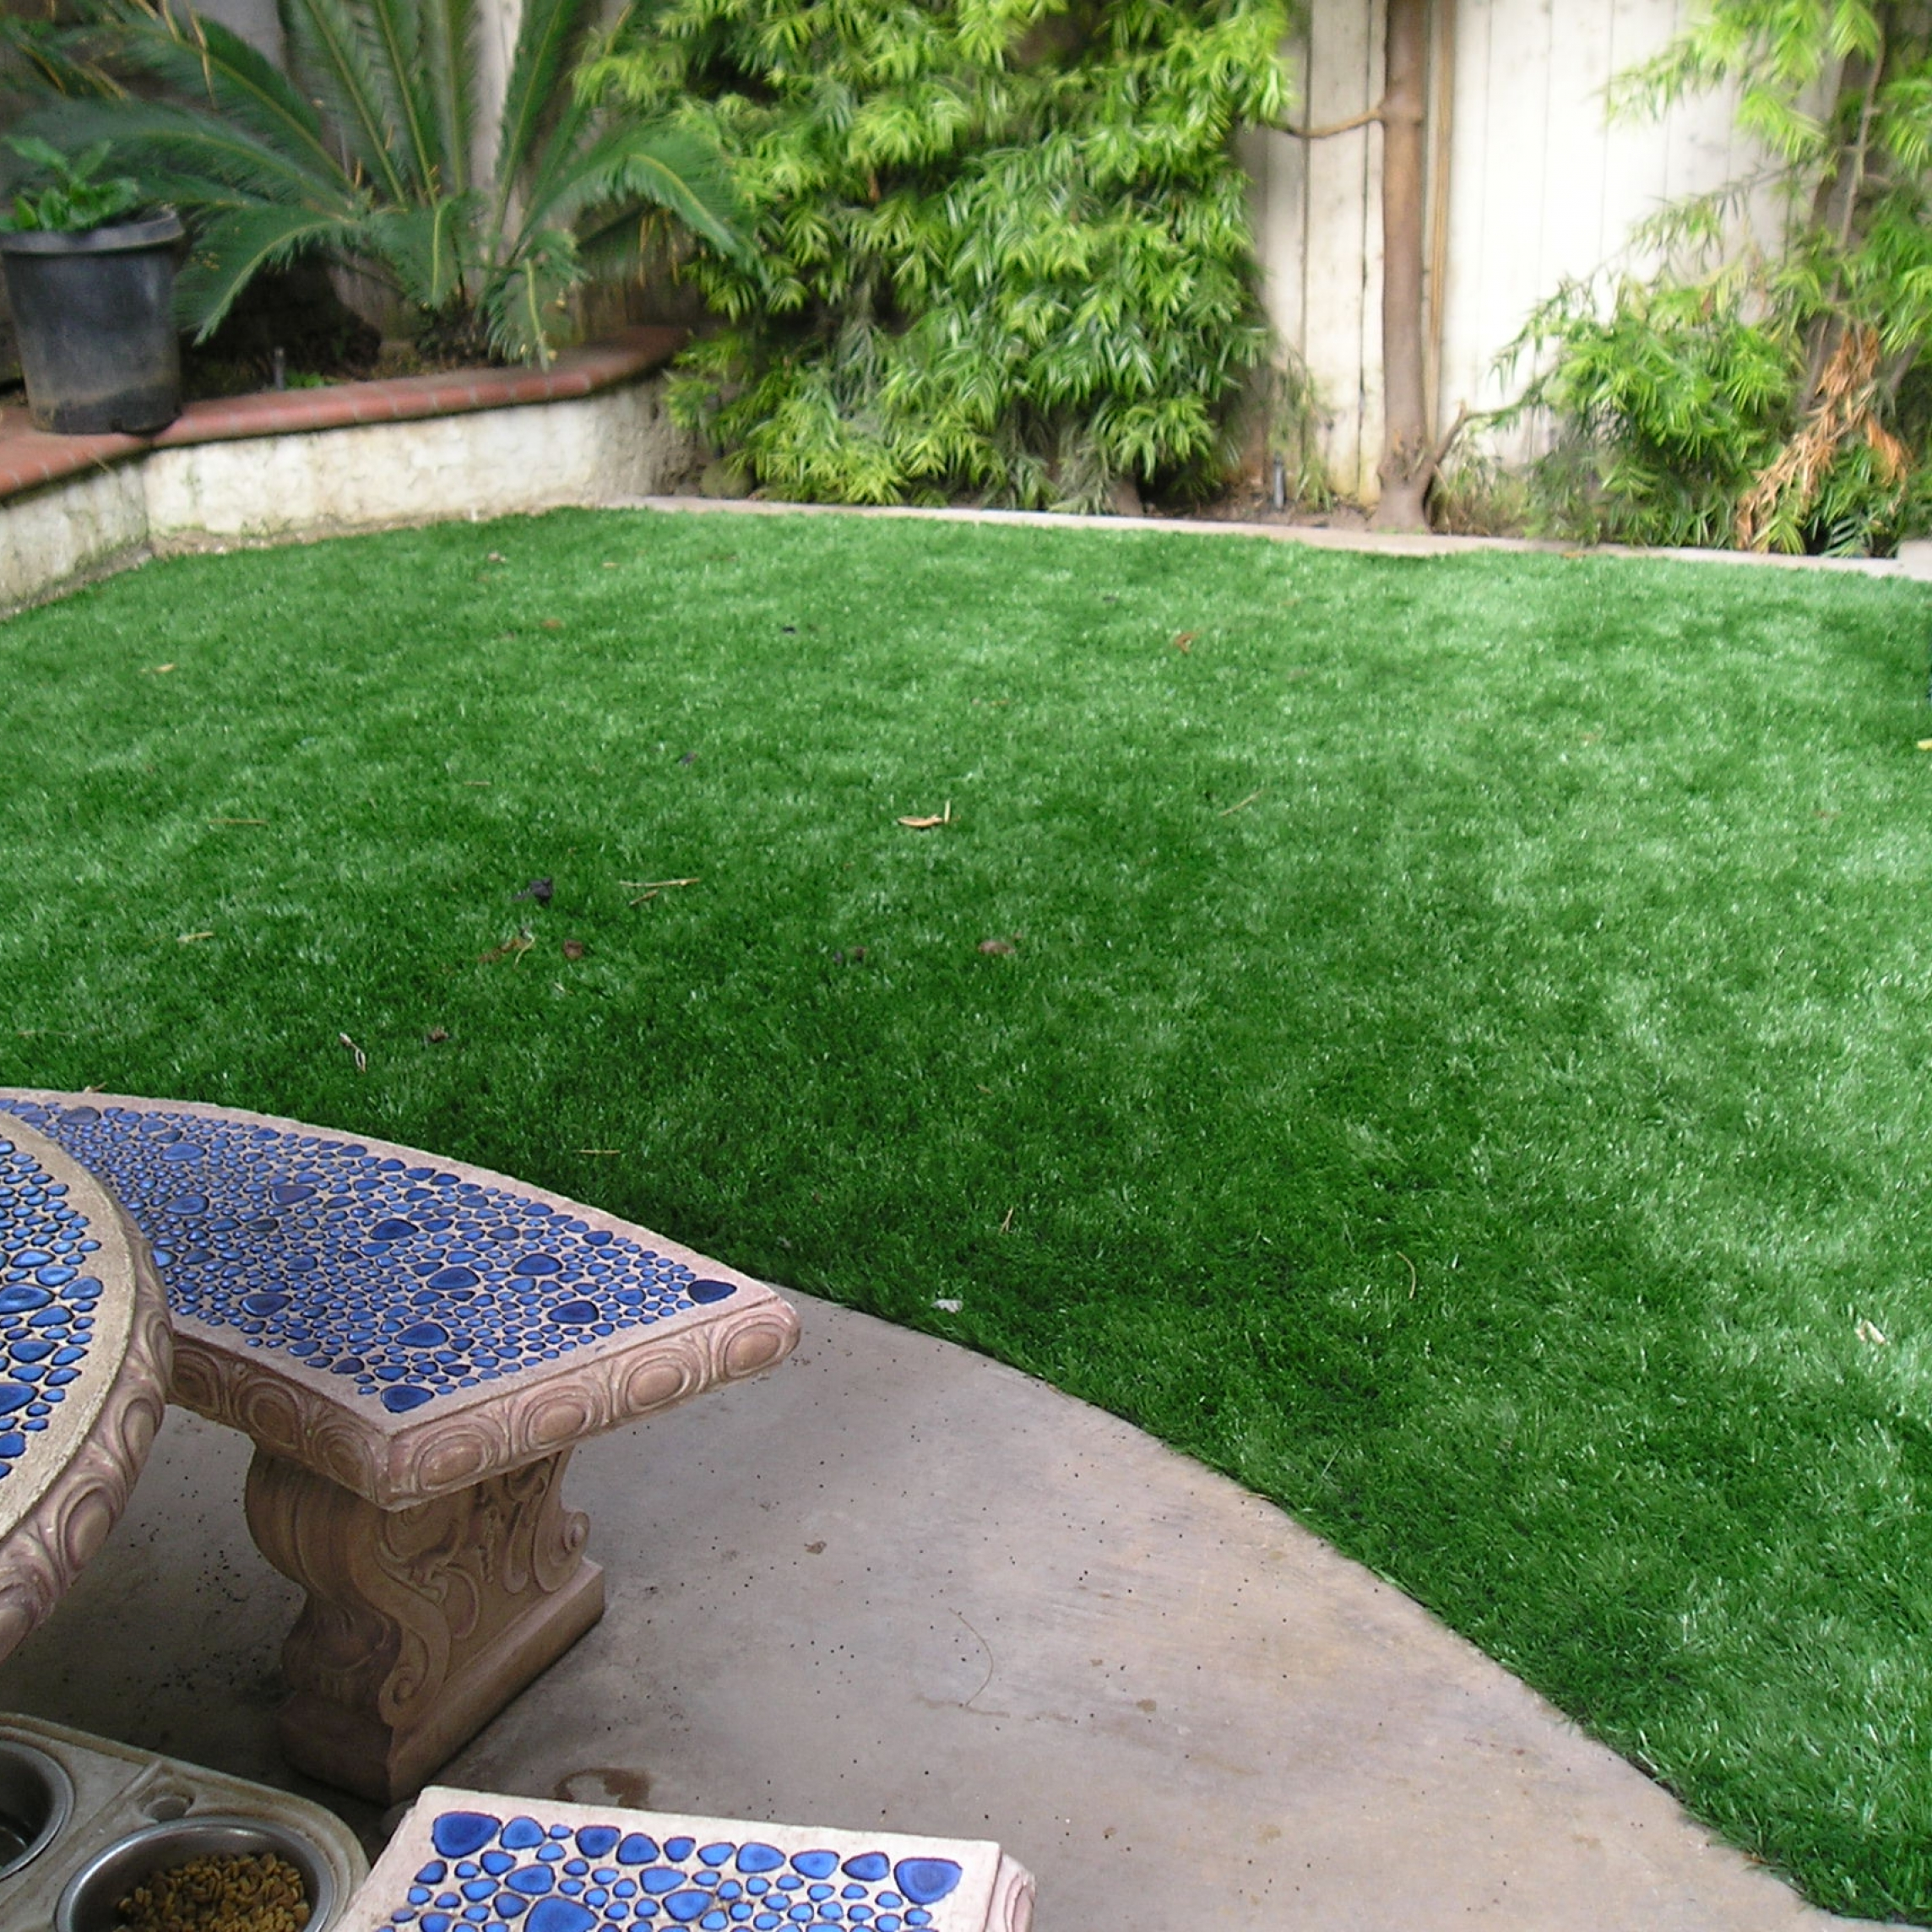 Riviera Monterey-50 artificial grass for homes,artificial turf for homes,best artificial grass for home,astro turf for home,artificial lawns for homes